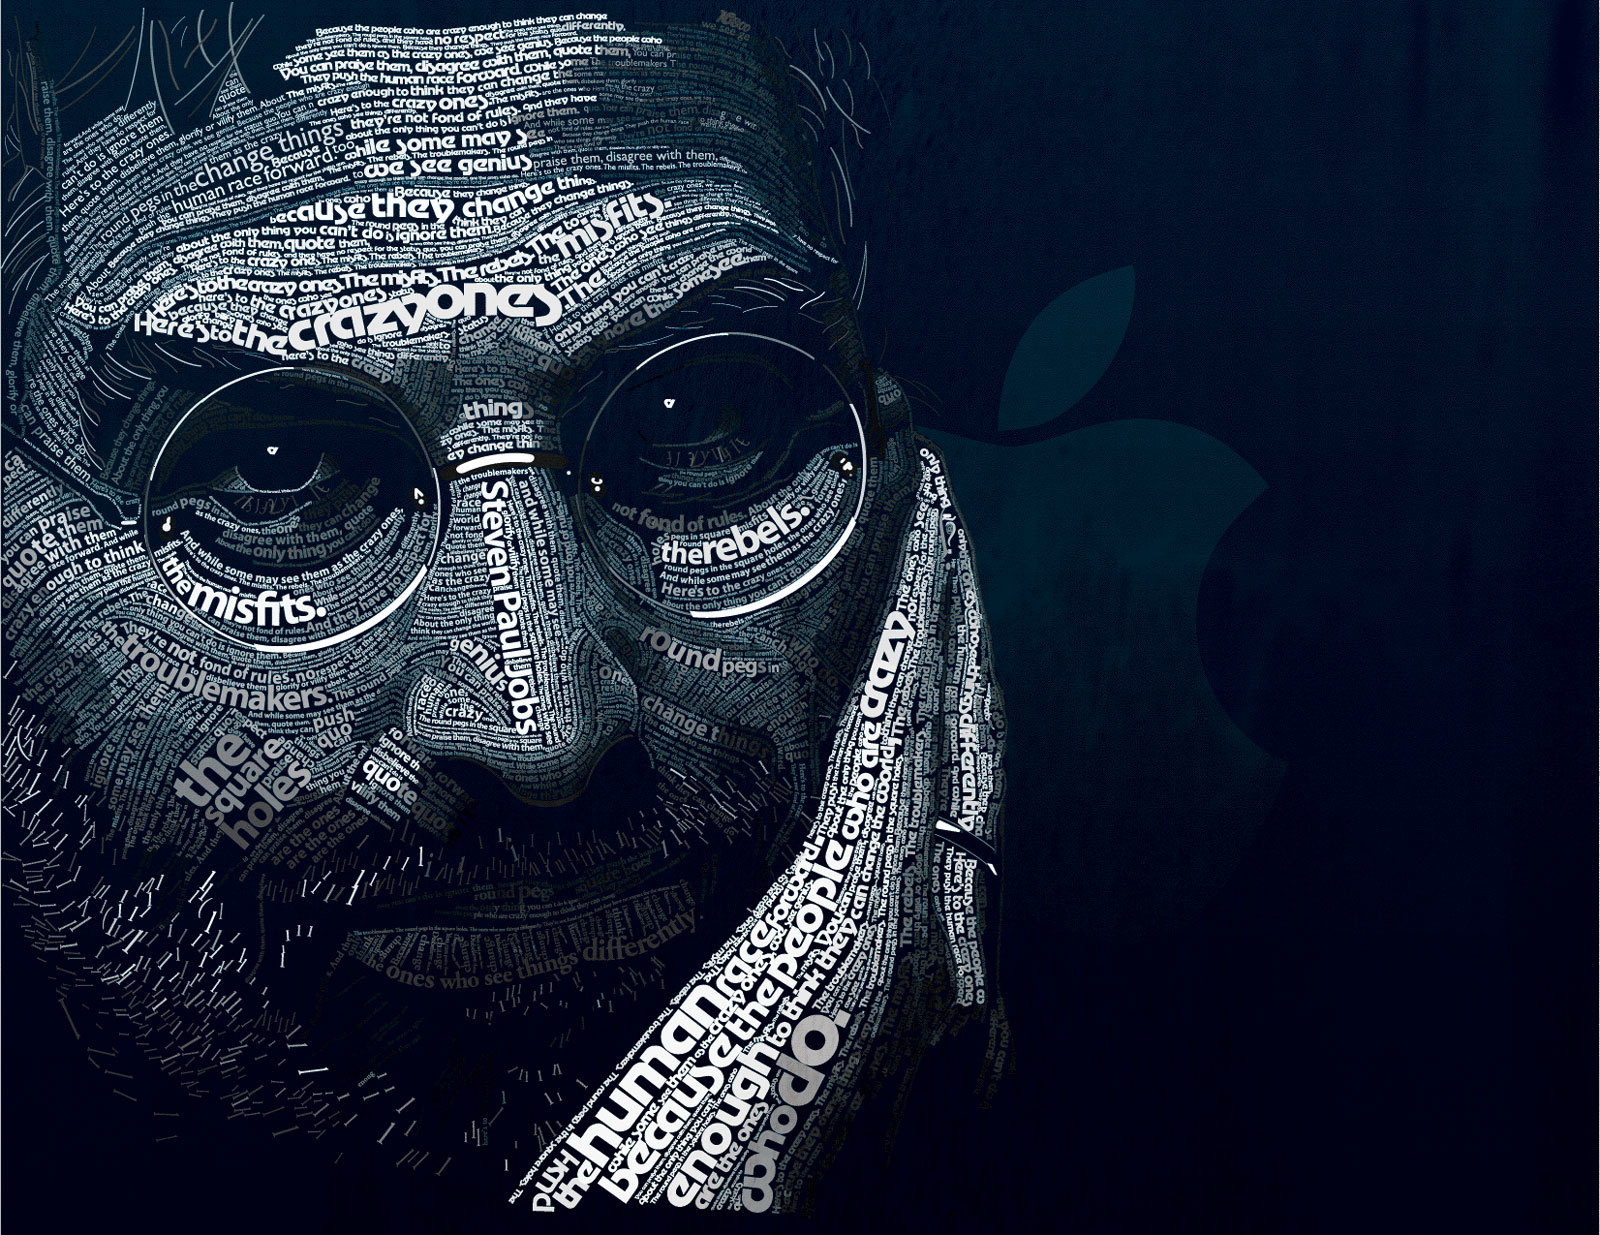 Steve Jobs typographic portrait